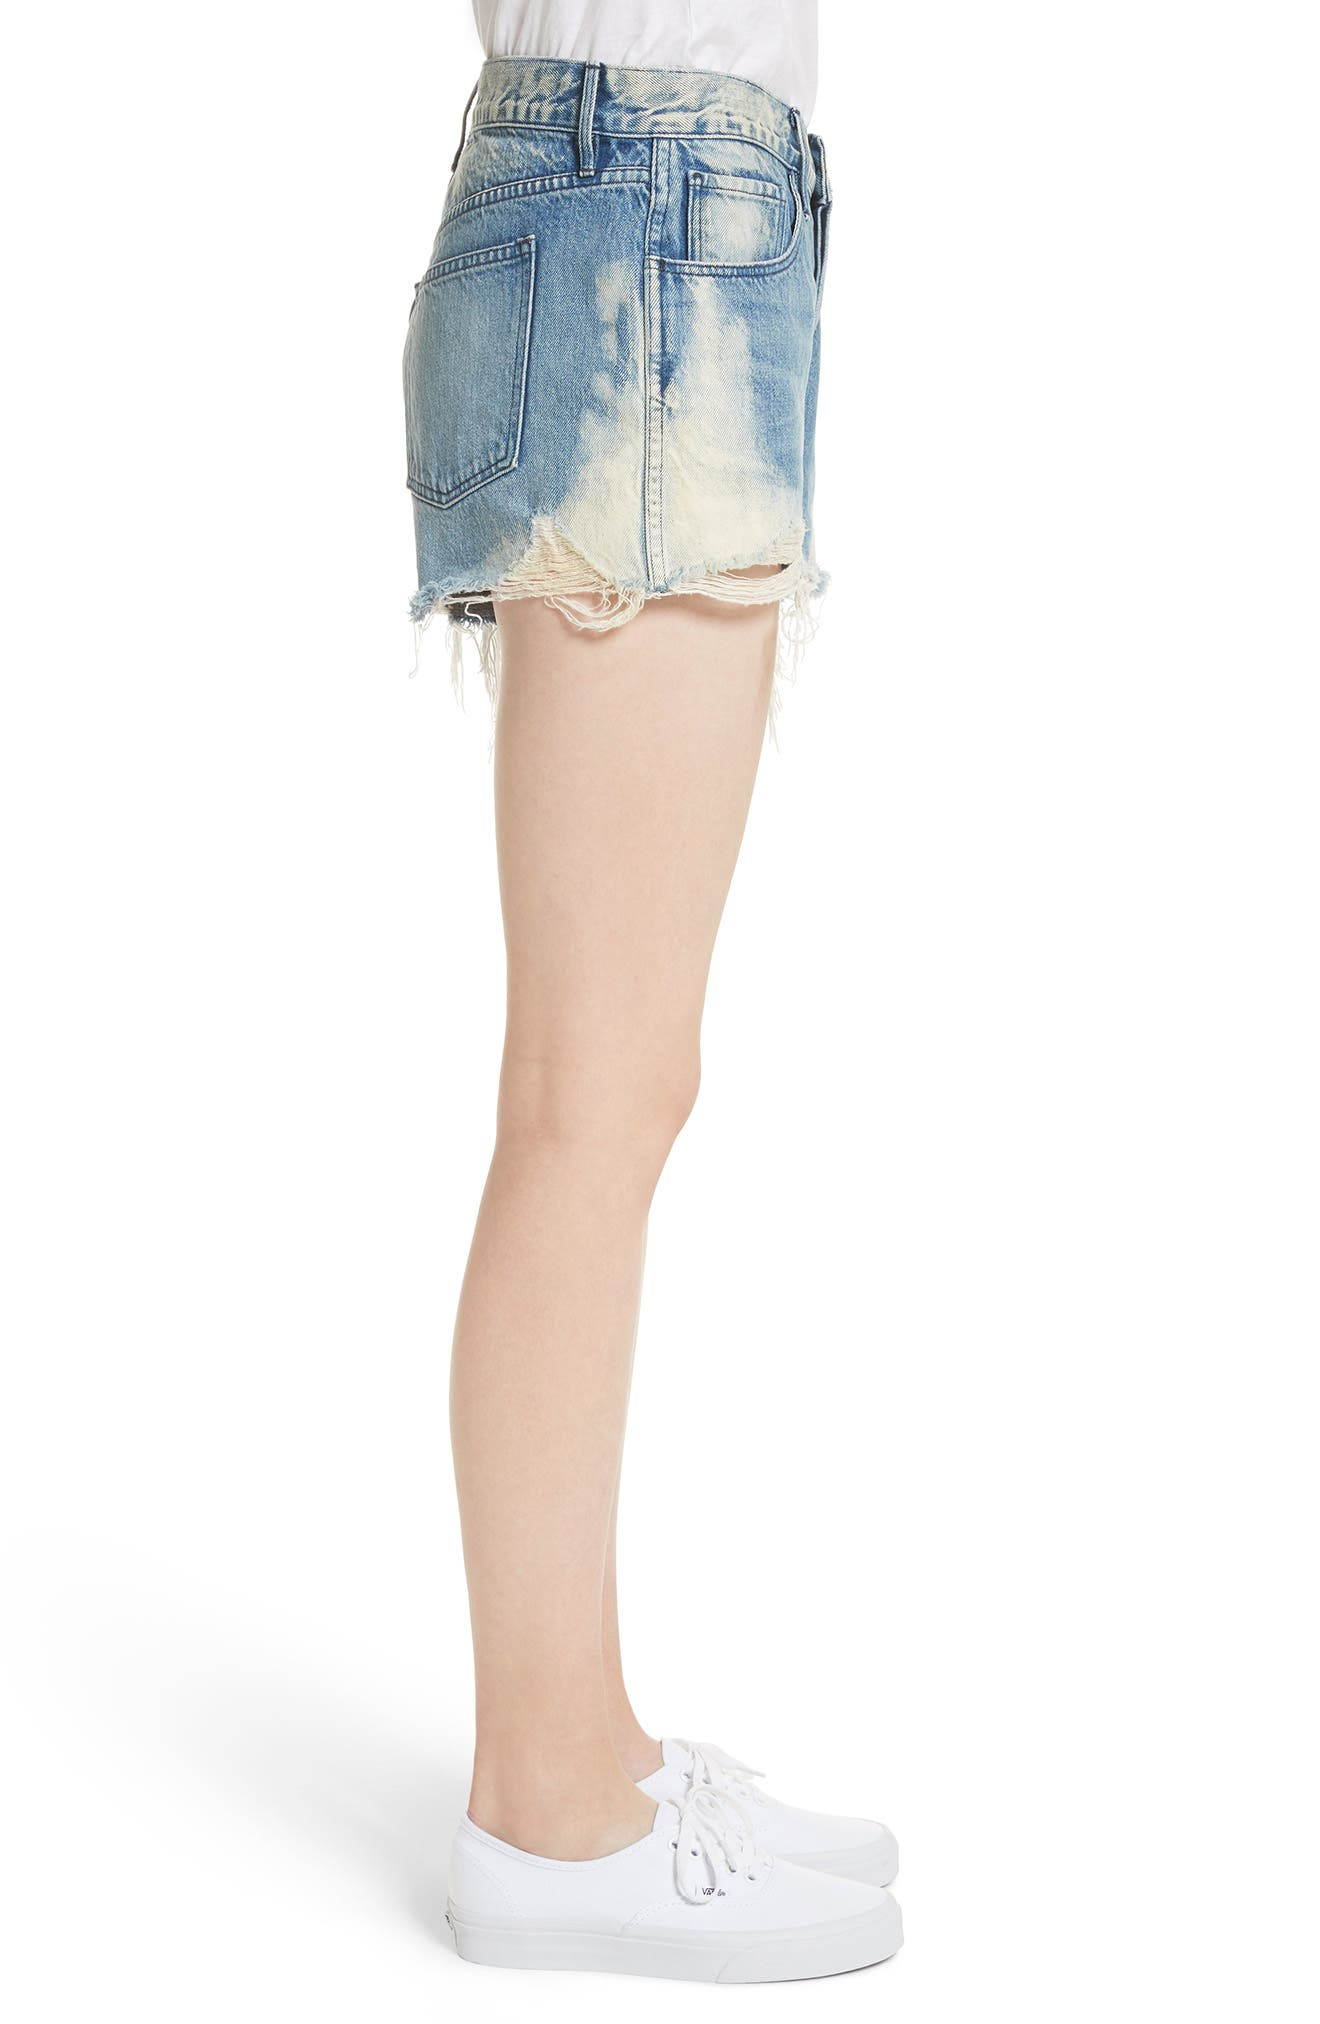 W2 Mason Denim Shorts,                             Alternate thumbnail 3, color,                             VANDAL